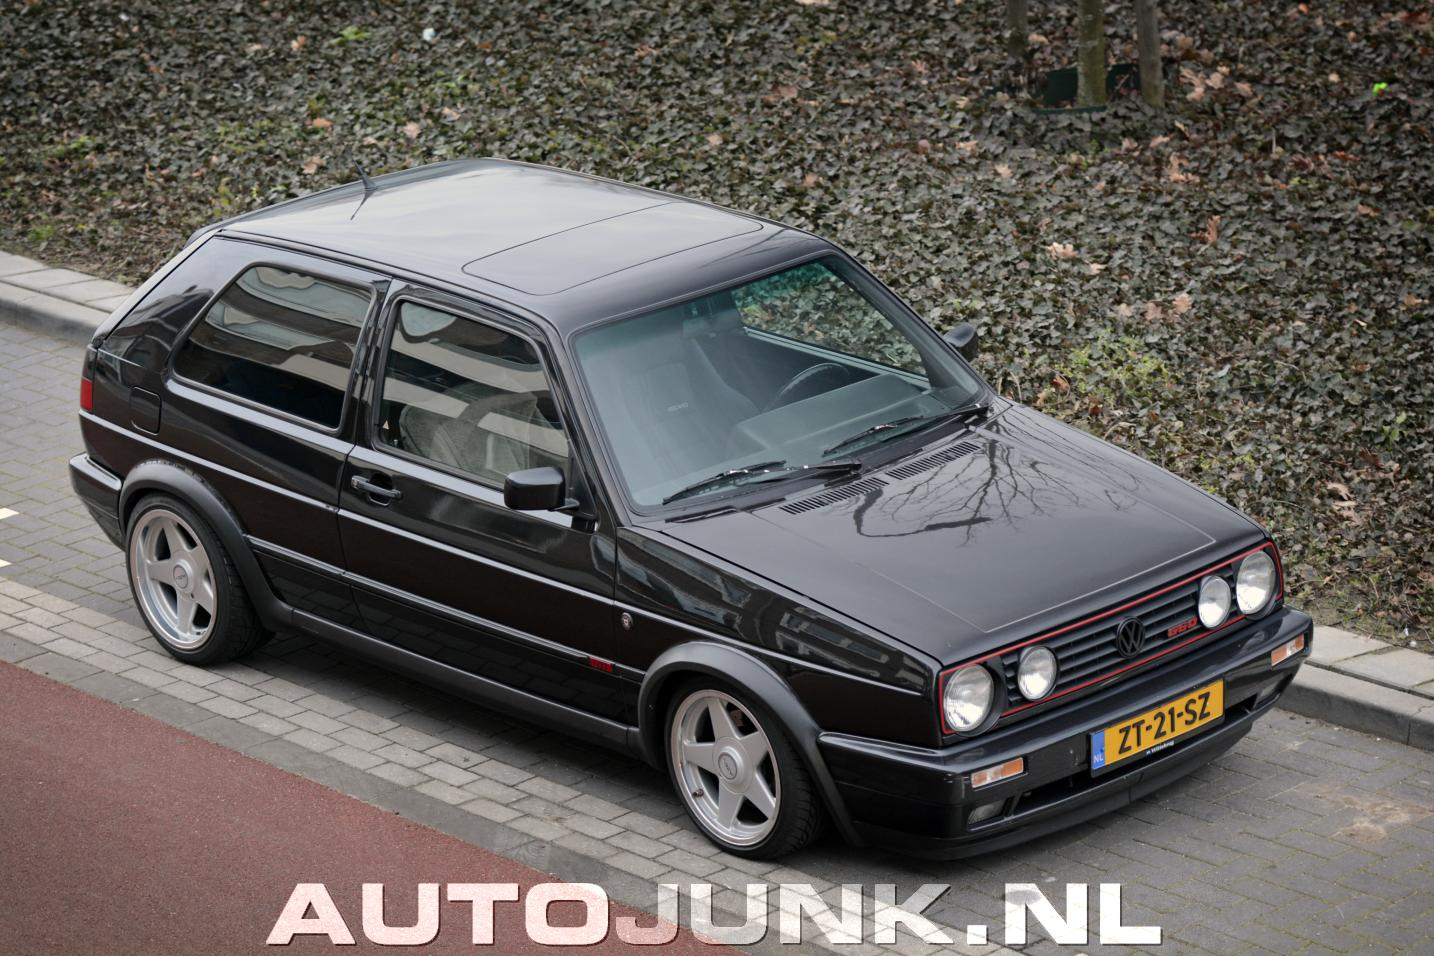 volkswagen golf ii gti g60 foto 39 s 160513. Black Bedroom Furniture Sets. Home Design Ideas